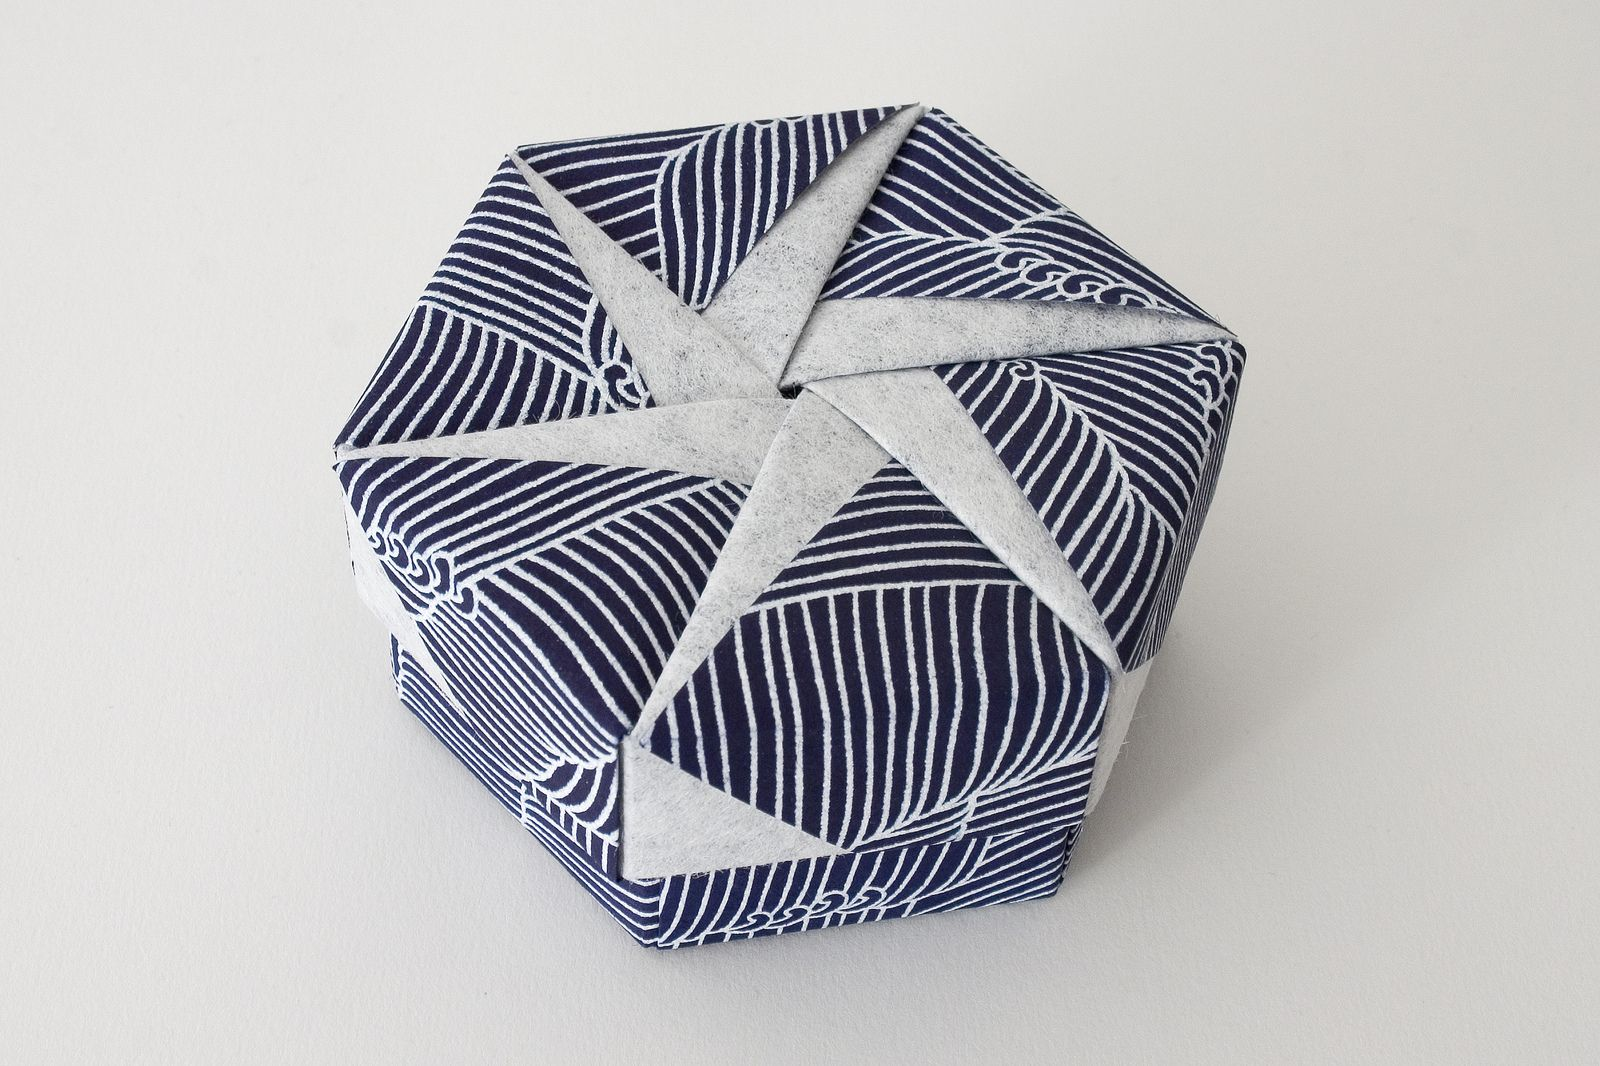 hexagonal origami box with lid 16 flickr photo sharing  [ 1600 x 1066 Pixel ]